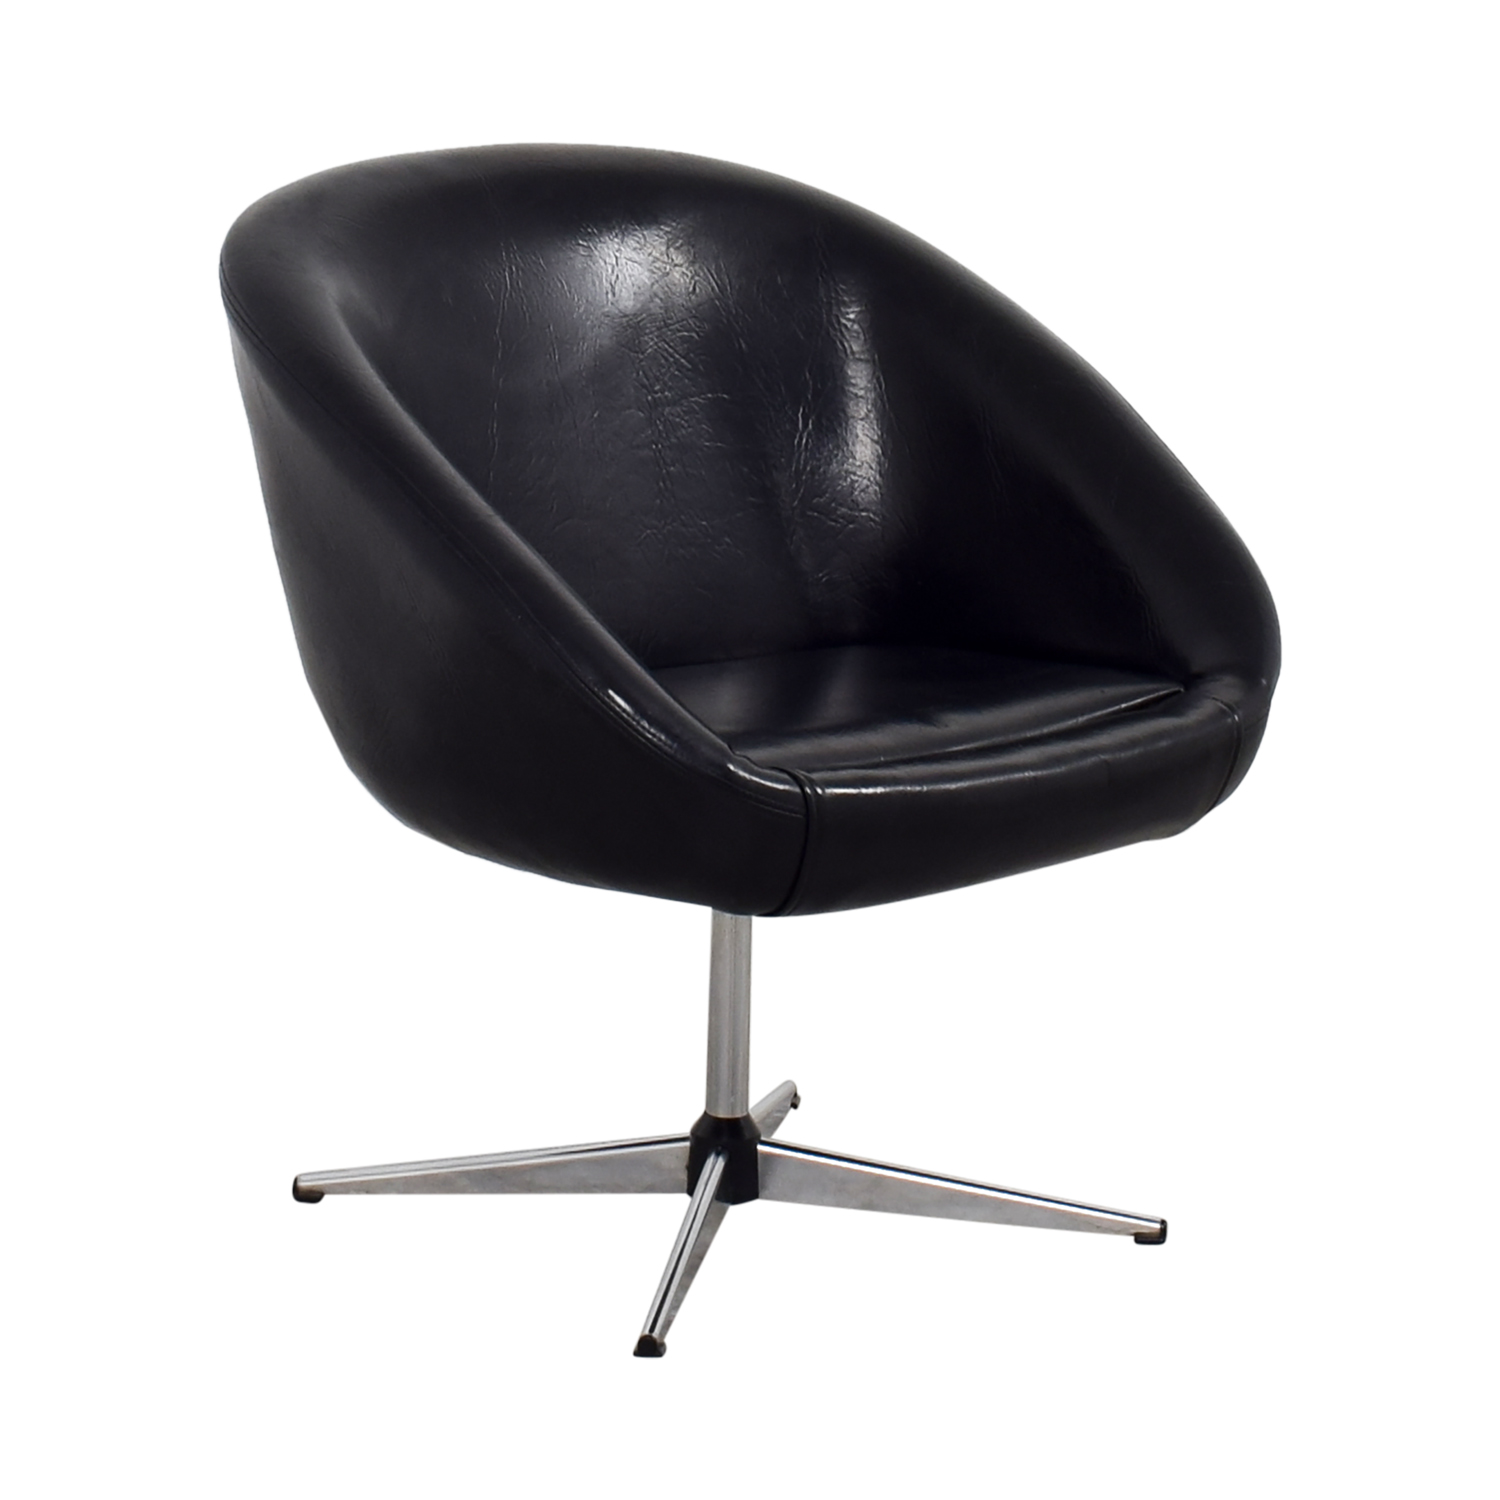 Designer Chairs Used 75 Off By Design By Design Modern Black Revolving Chair